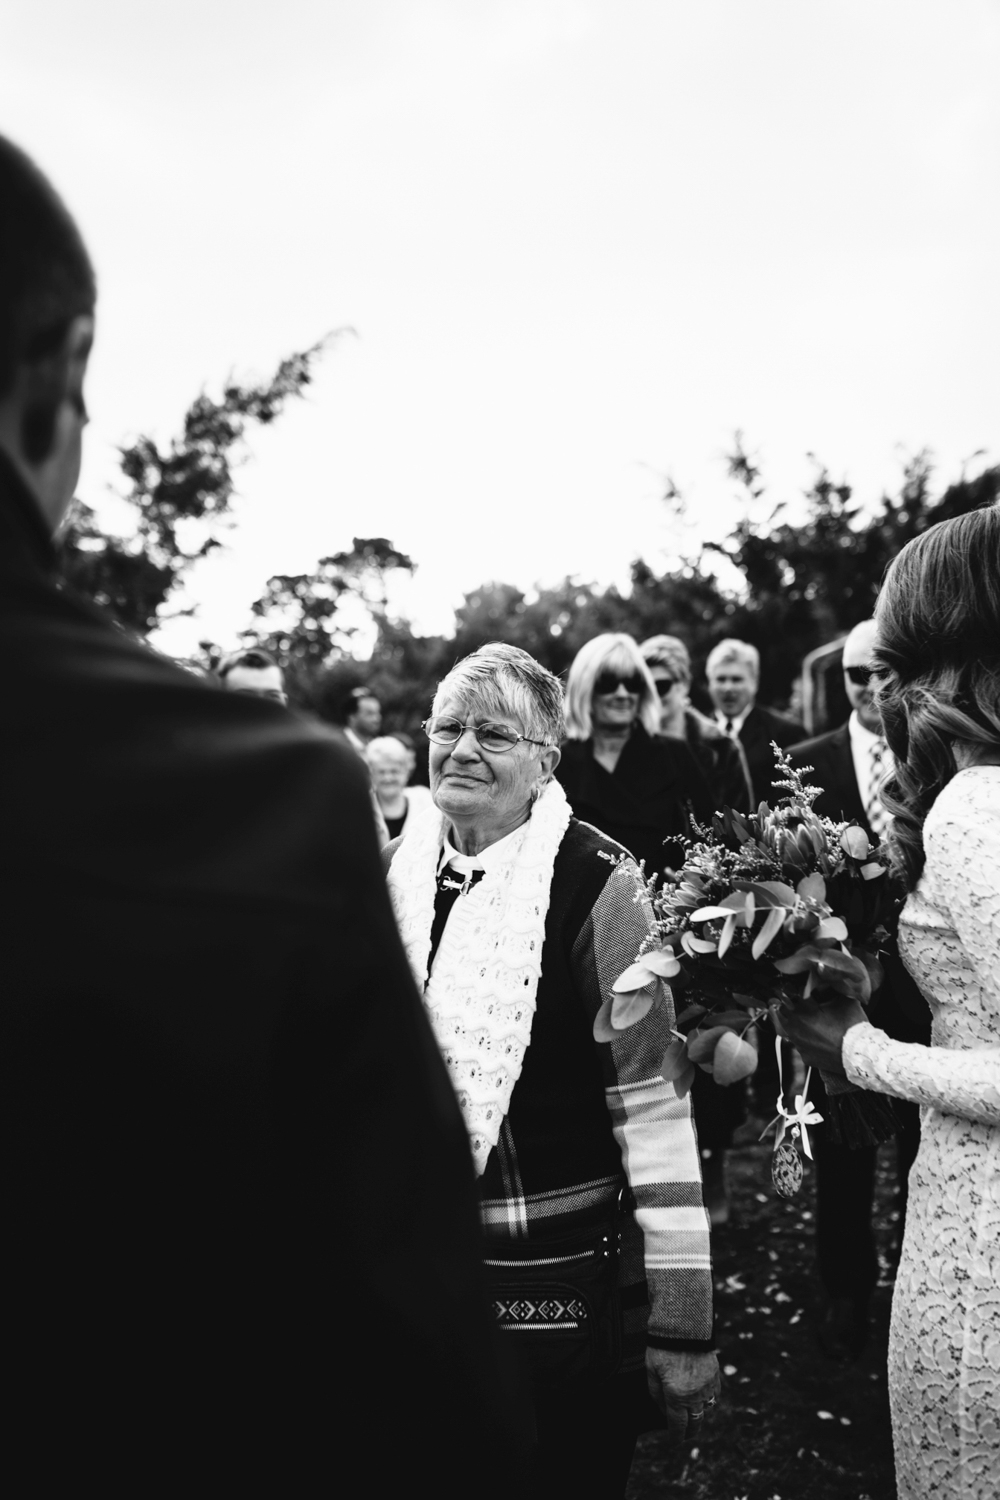 Emotional guest after wedding ceremony.